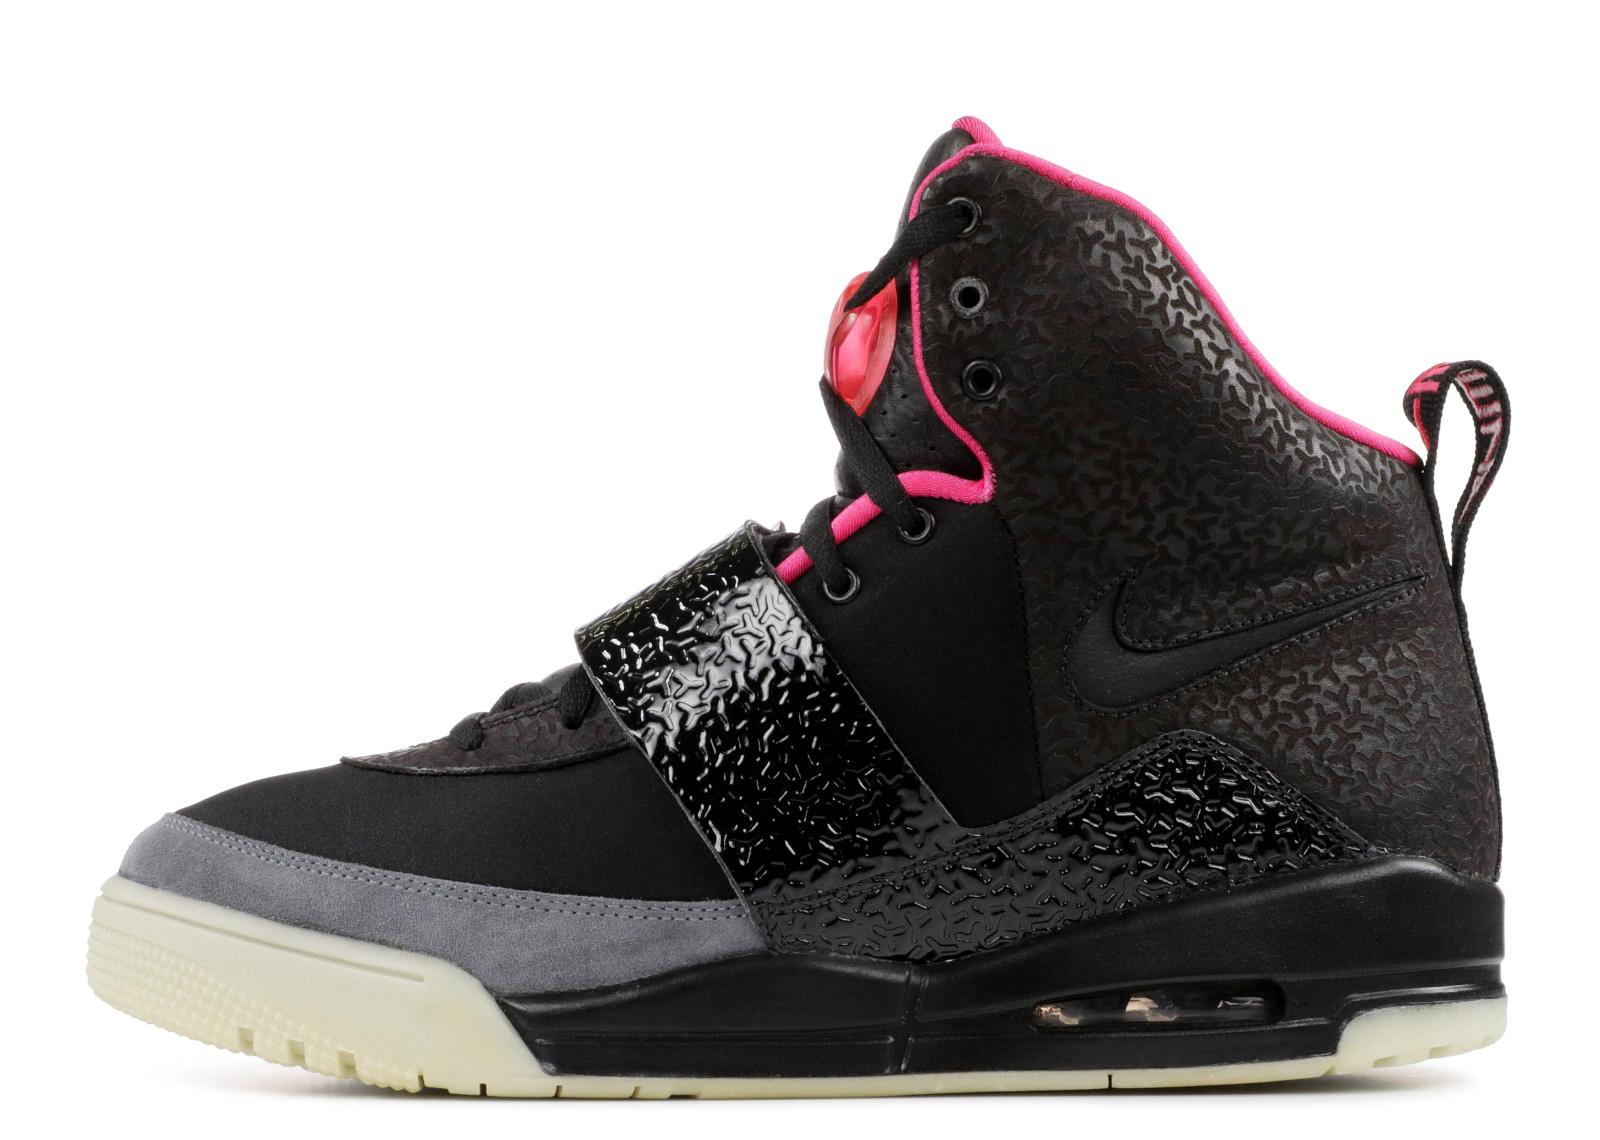 Air Yeezy 1 Blinks/Black Pink